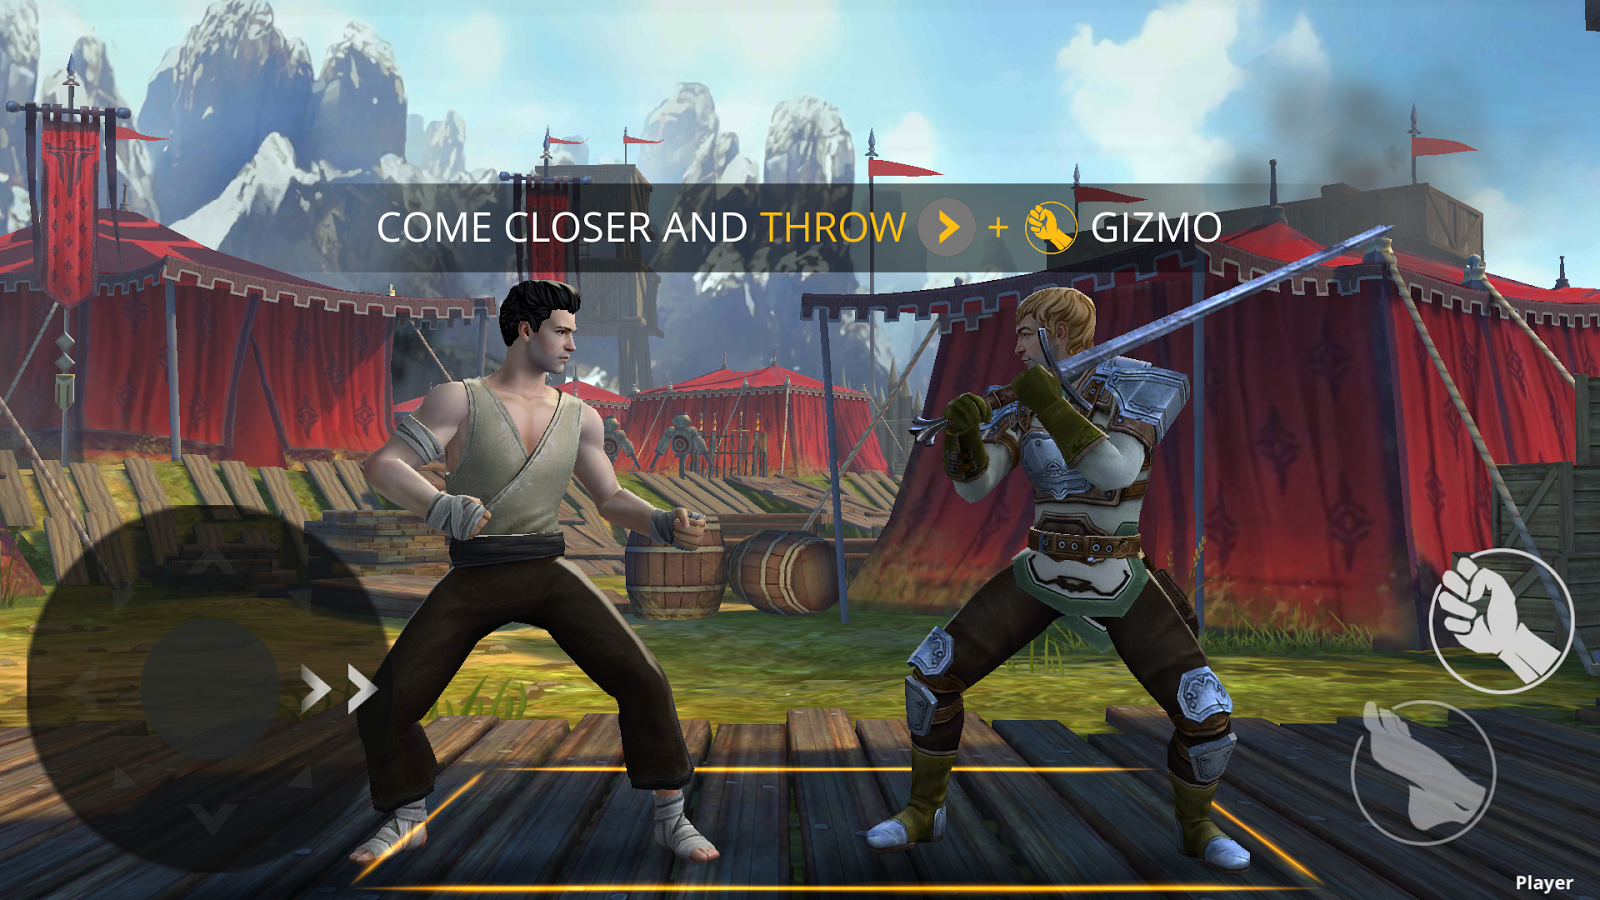 Shadow Fight 3 v1.1.6203 Original + Mod APK+OBB data [UPDATED]